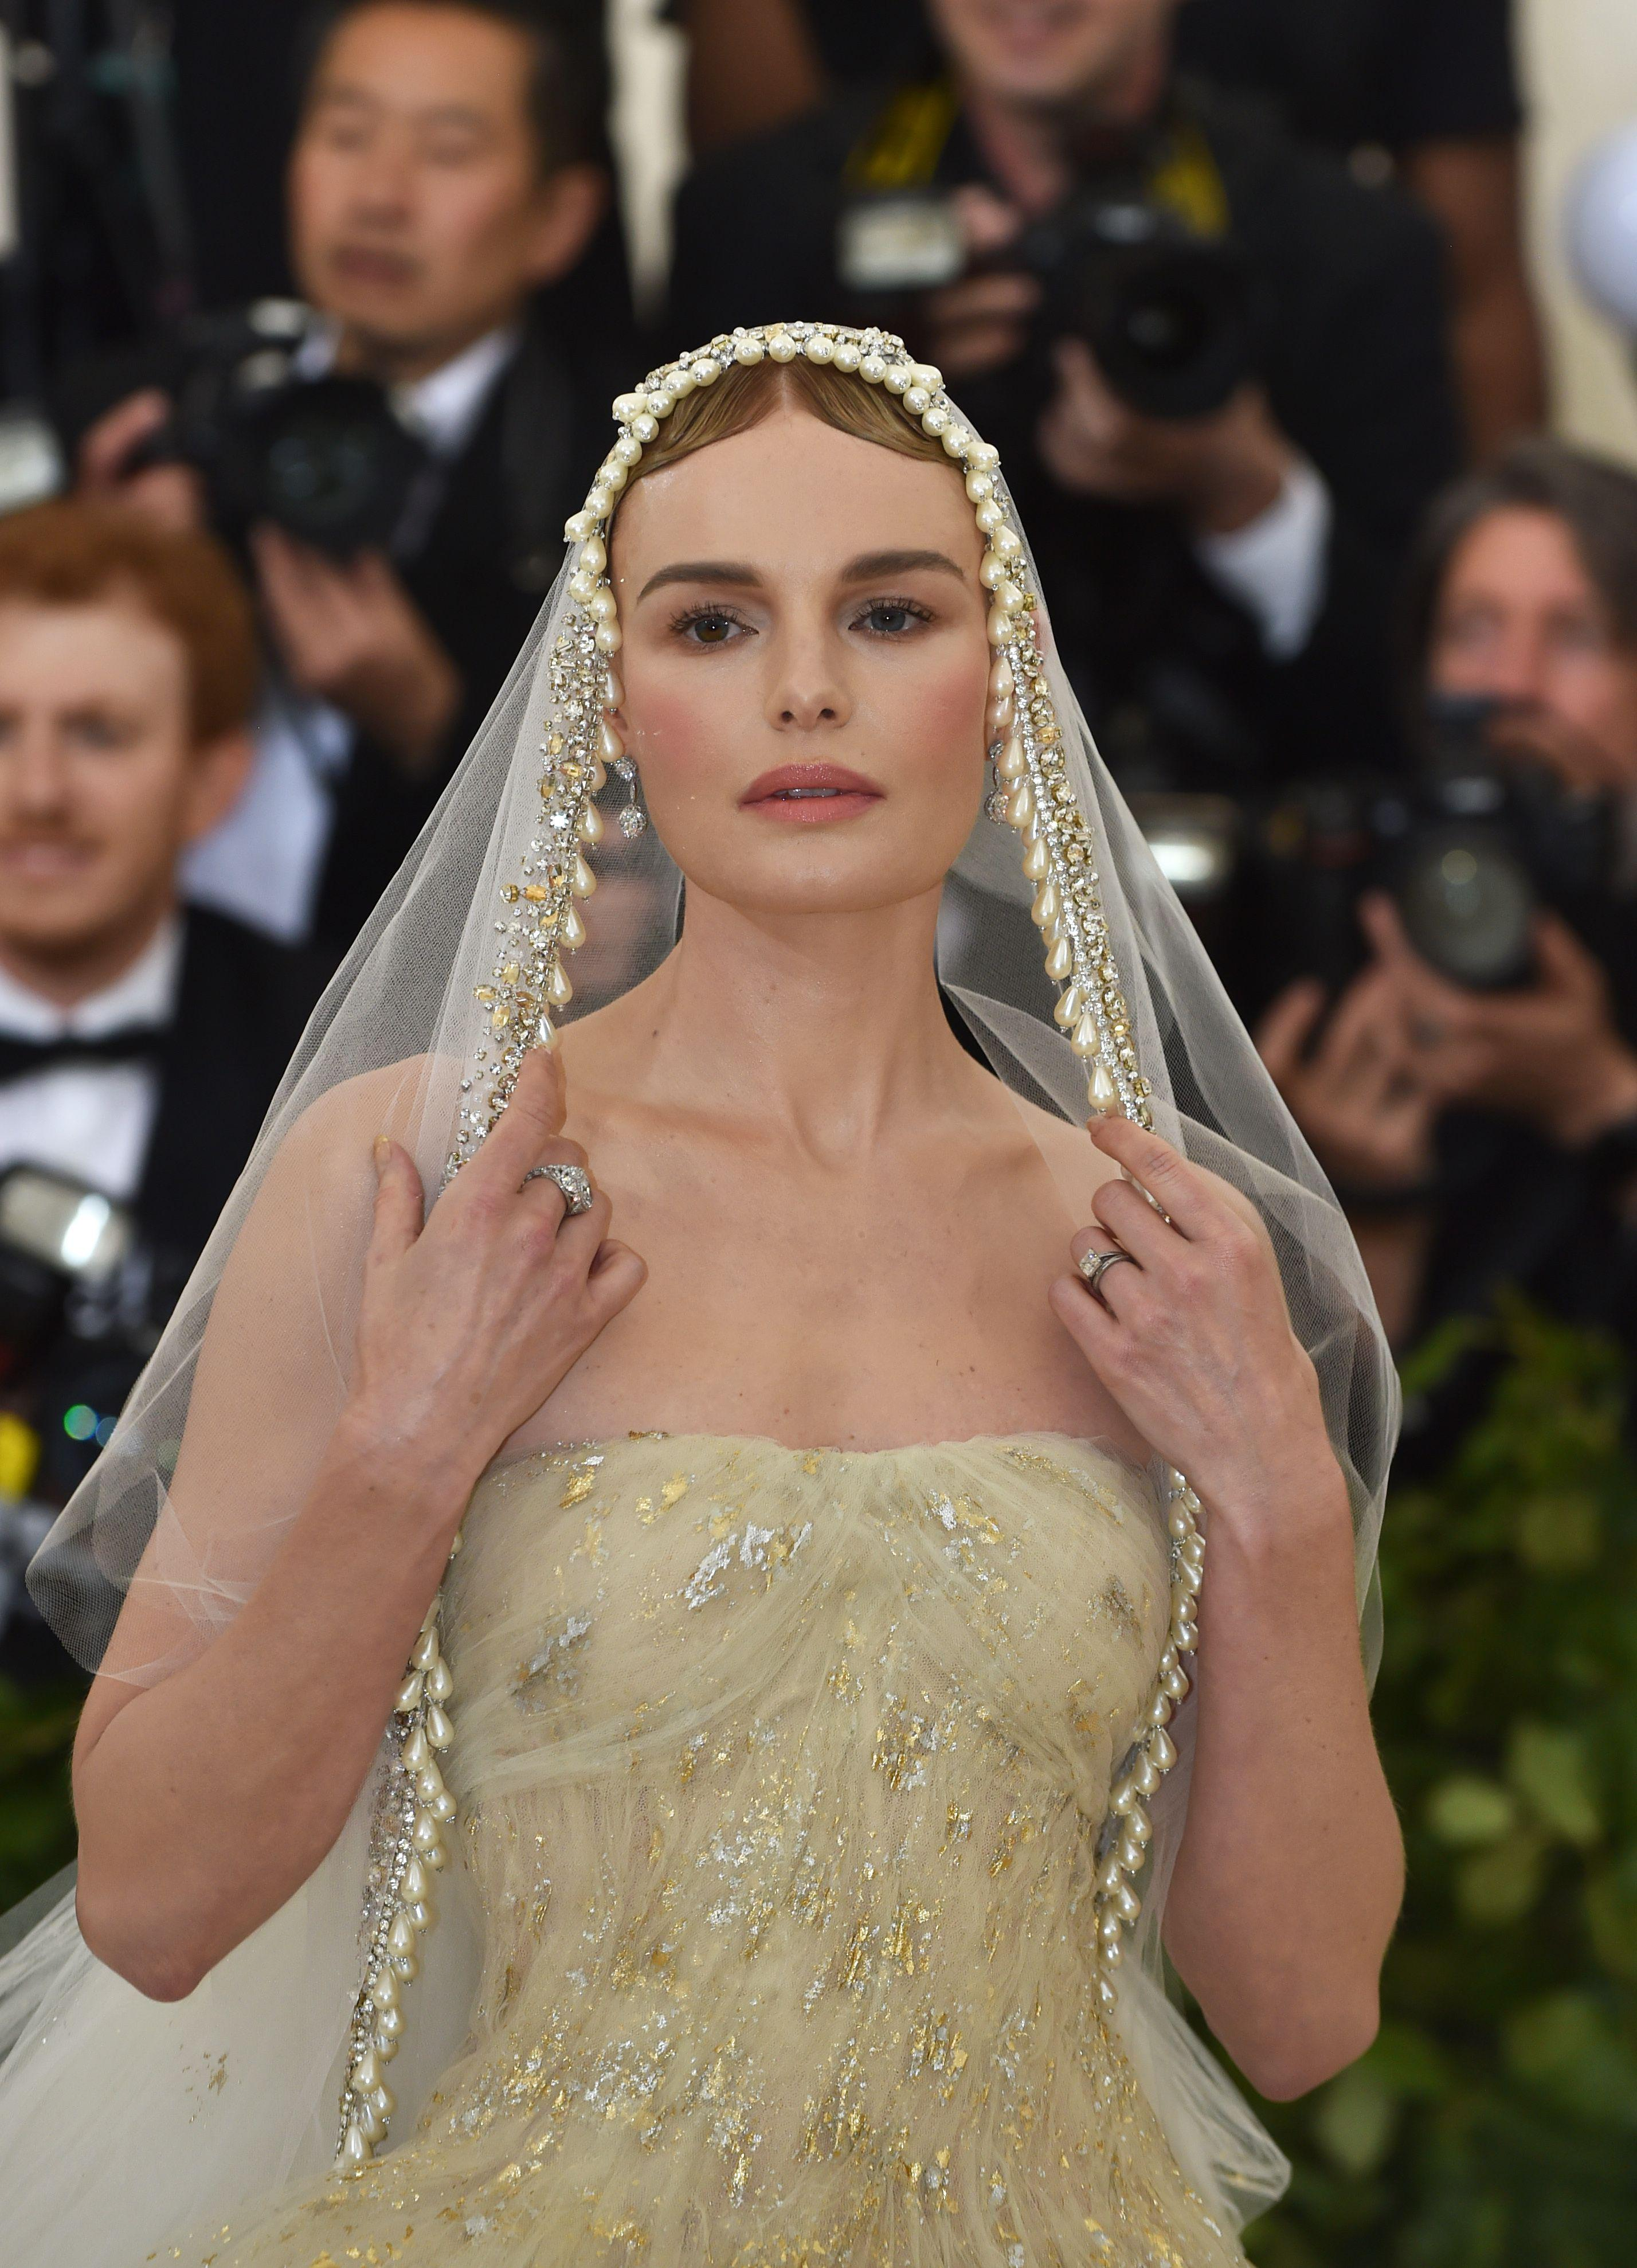 Kate Bosworth arrives for the 2018 Met Gala on May 7, 2018, at the Metropolitan Museum of Art in New York. - The Gala raises money for the Metropolitan Museum of Arts Costume Institute. The Gala's 2018 theme is Heavenly Bodies: Fashion and the Catholic Imagination. (Photo by Hector RETAMAL / AFP)        (Photo credit should read HECTOR RETAMAL/AFP/Getty Images)